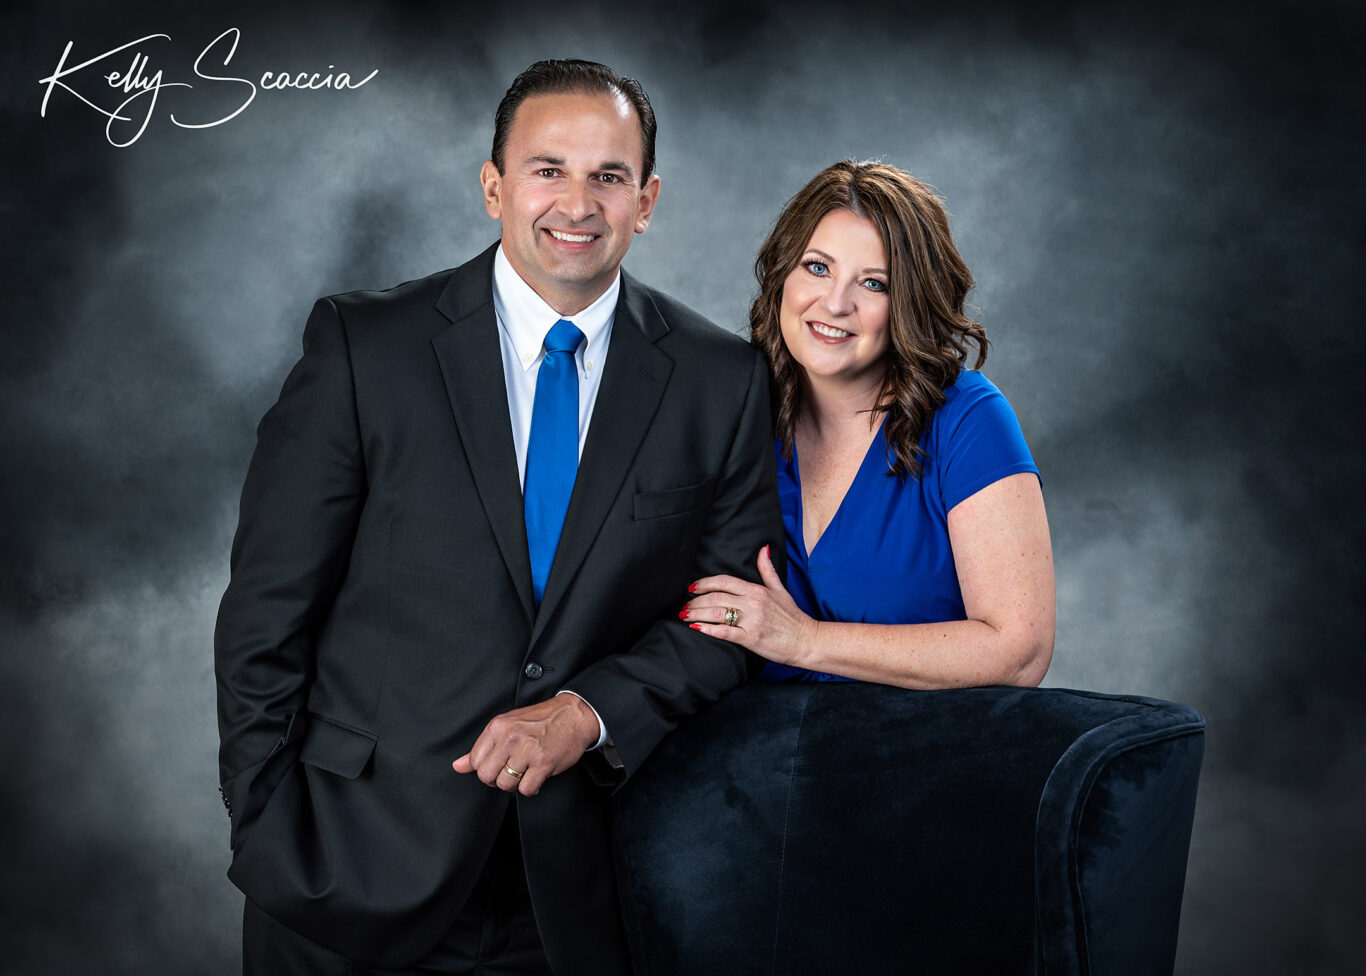 Formal studio portrait of wife in royal blue dress, husband in dark suit, blue tie, looking at you, smiling